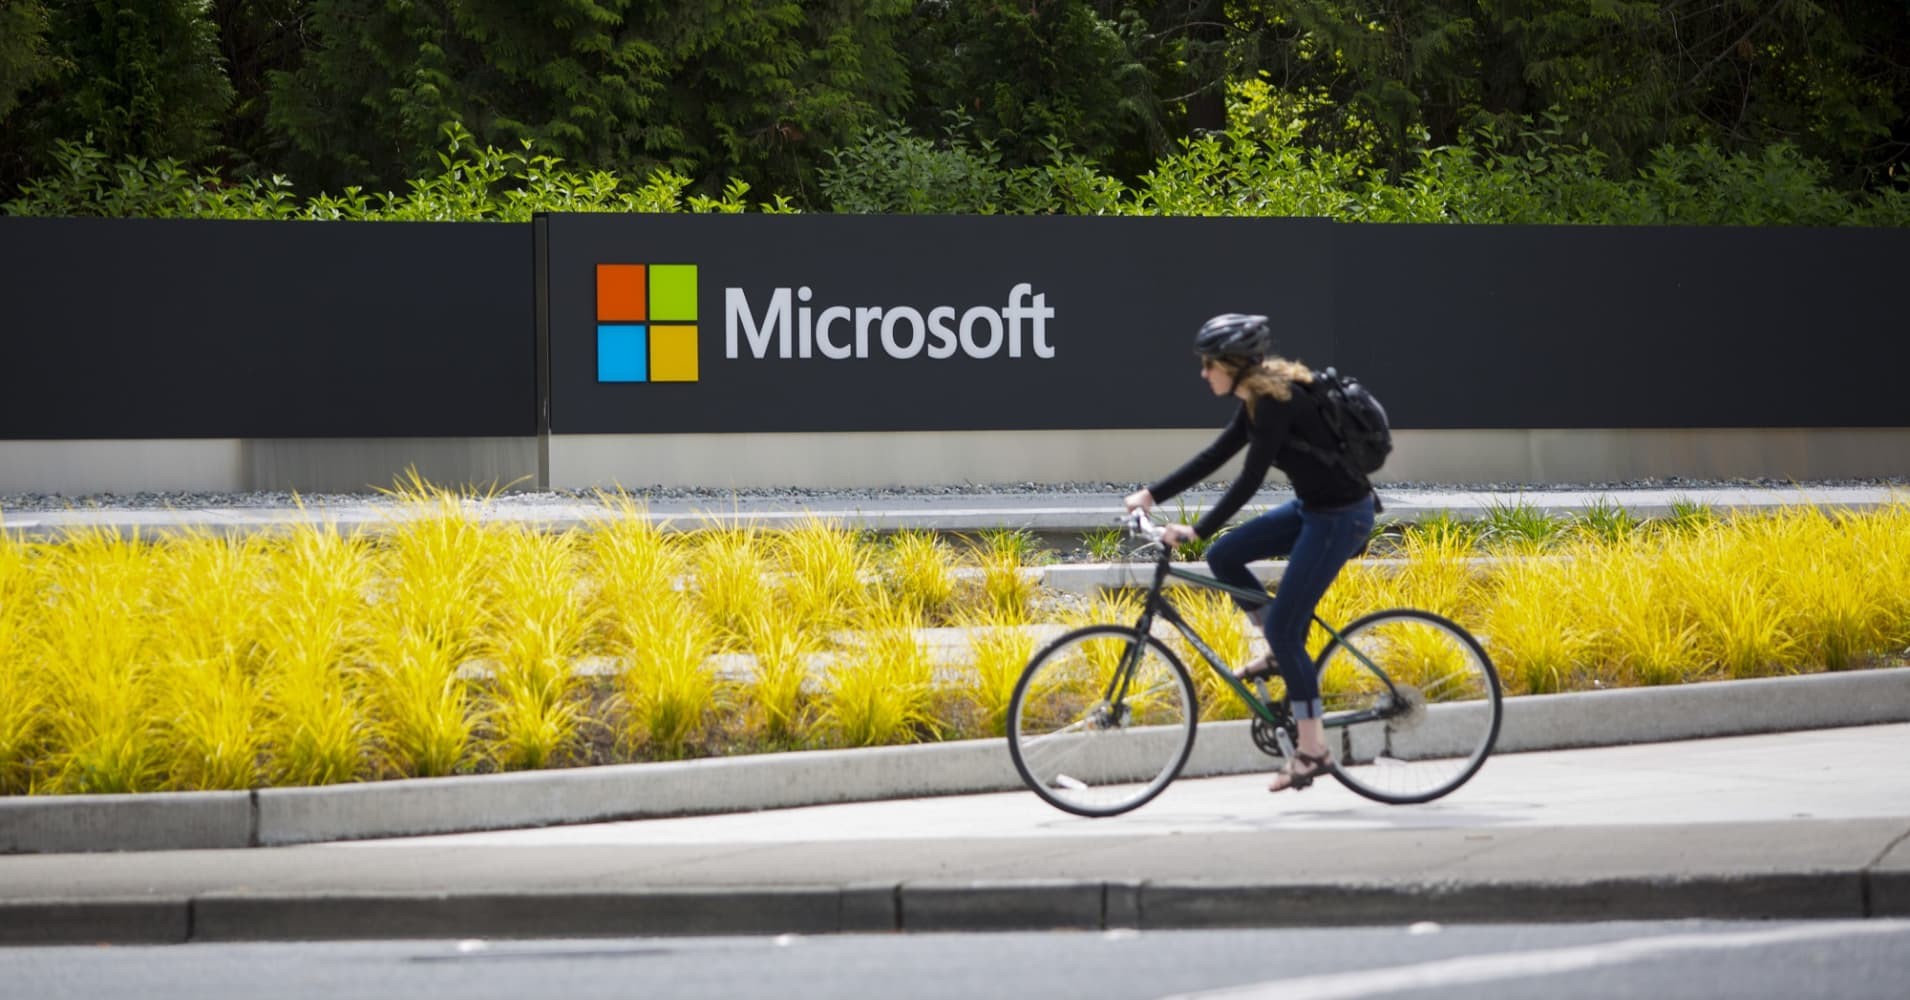 Microsoft will ride artificial intelligence, cloud computing to higher share price, Morgan Stanley says